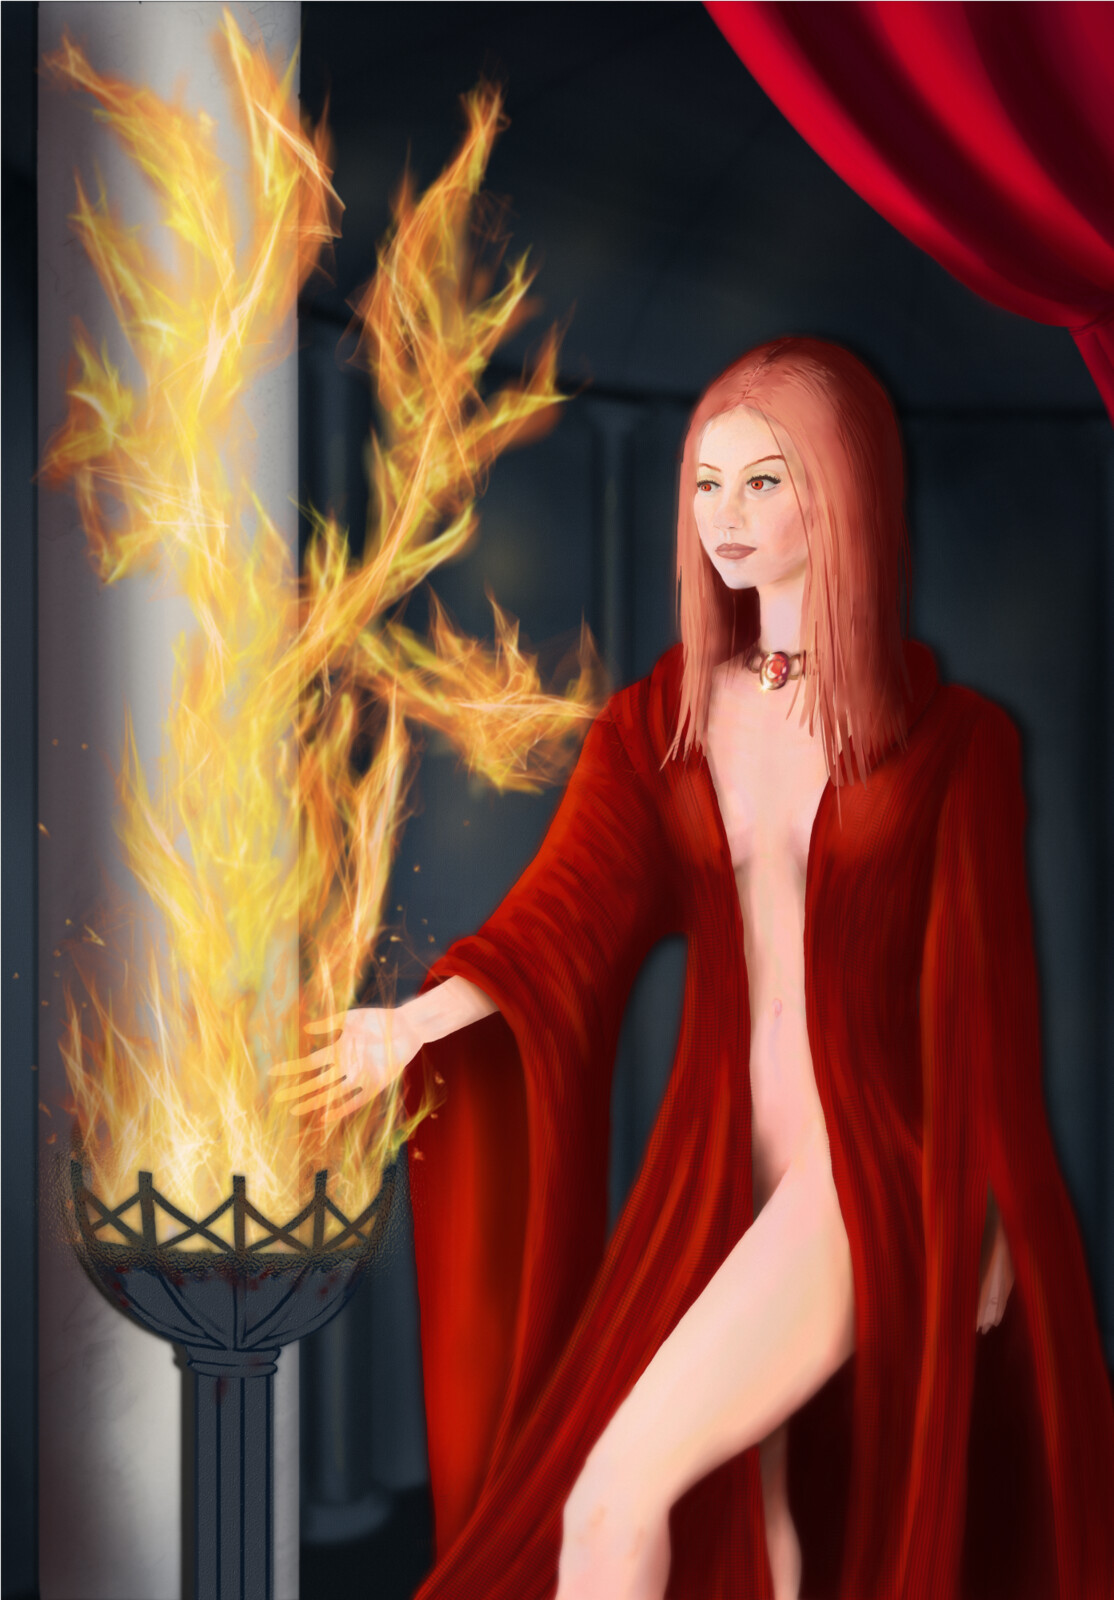 The Heart of Fire priestess